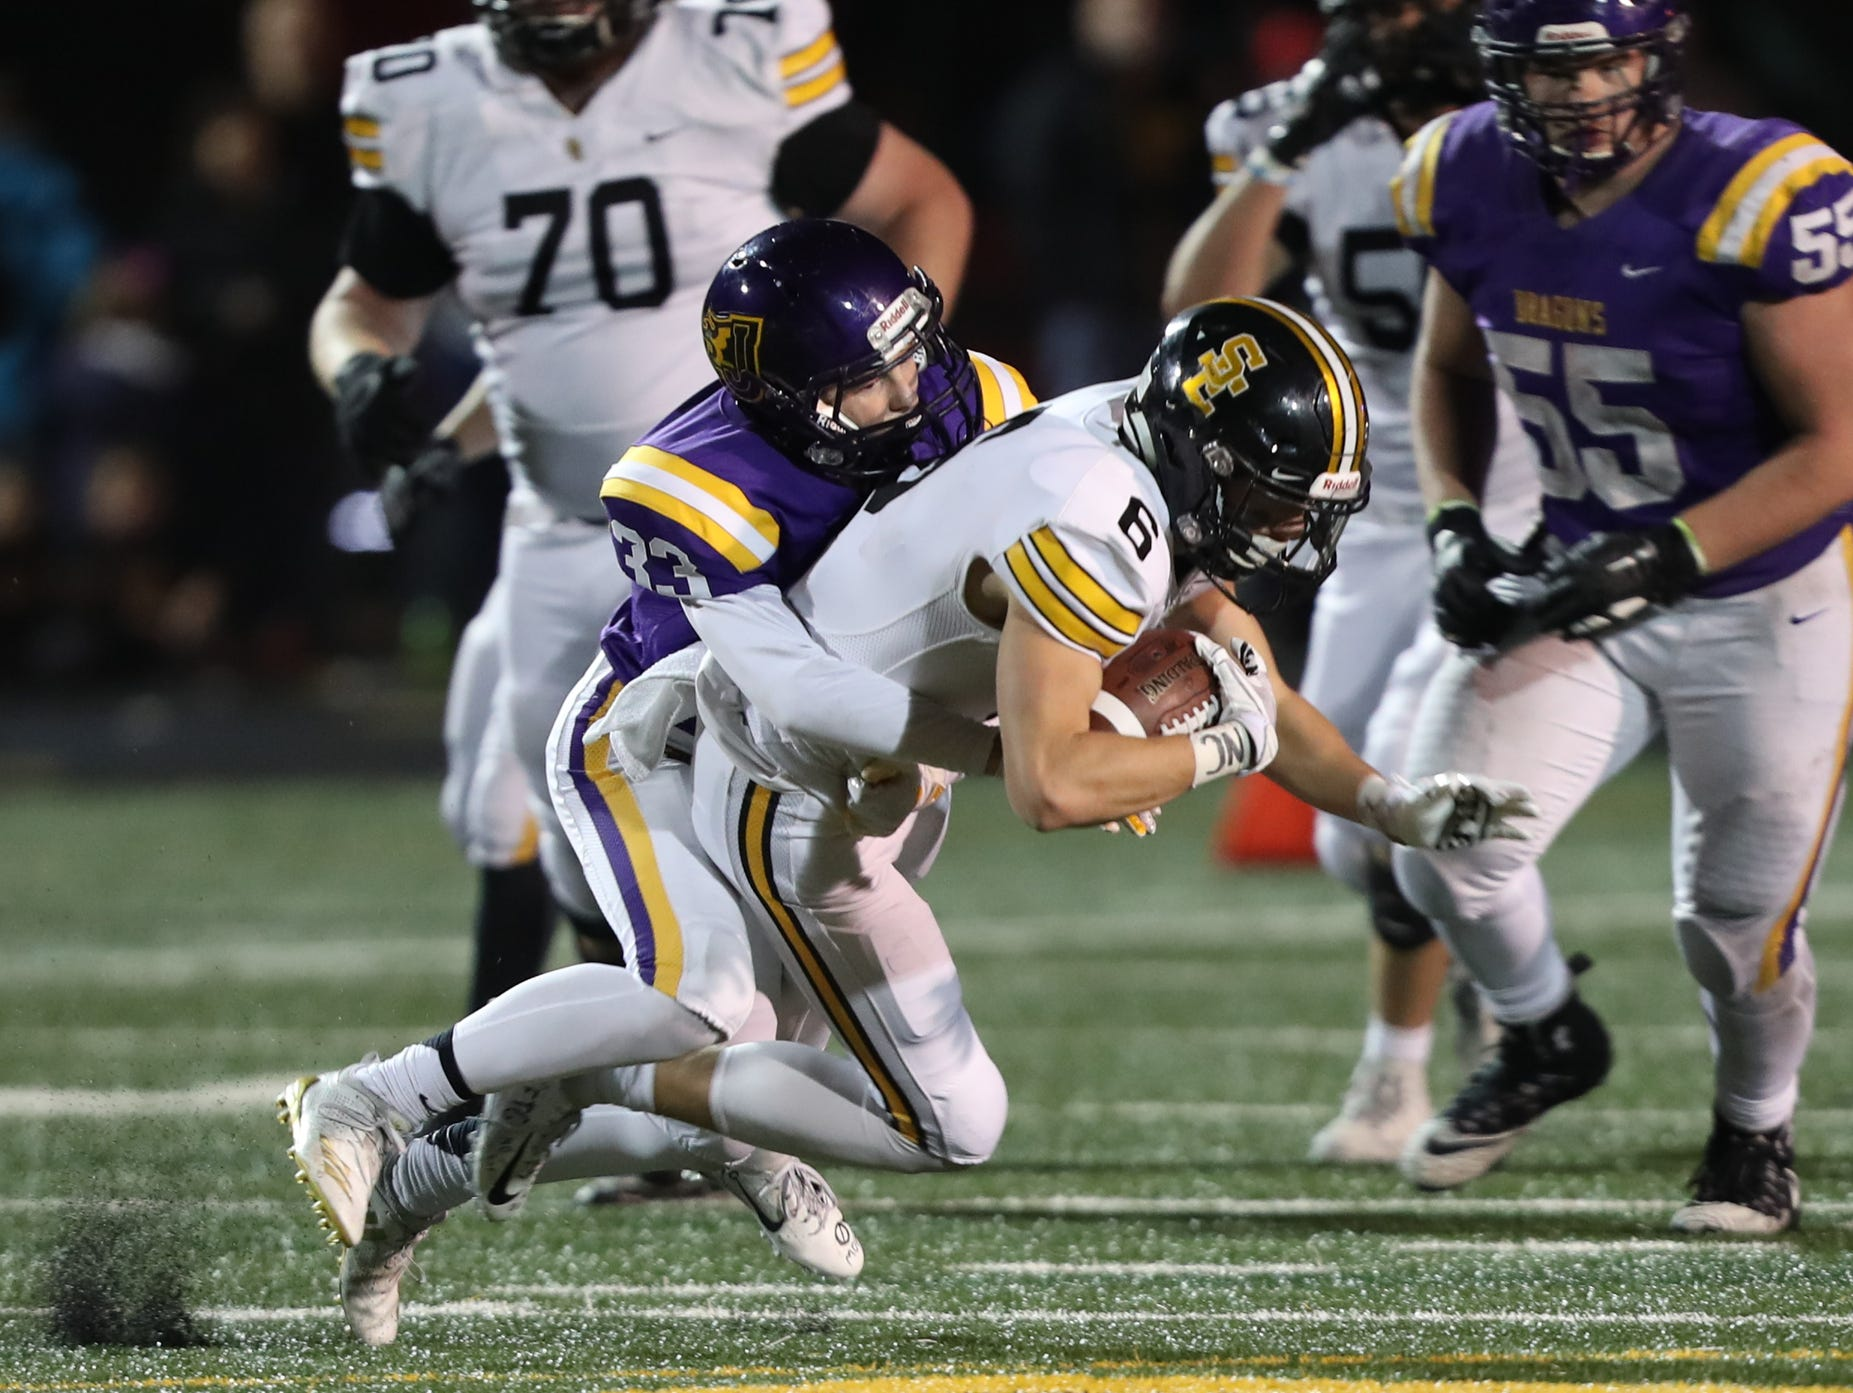 Nov 2, 2018; Johnston, IA, USA; Southeast Polk Rams Dylan Travis (6) is tackled by Johnston Dragons Caleb Helgeson (33) at Johnston Stadium. The Rams beat the Dragons 21-7.